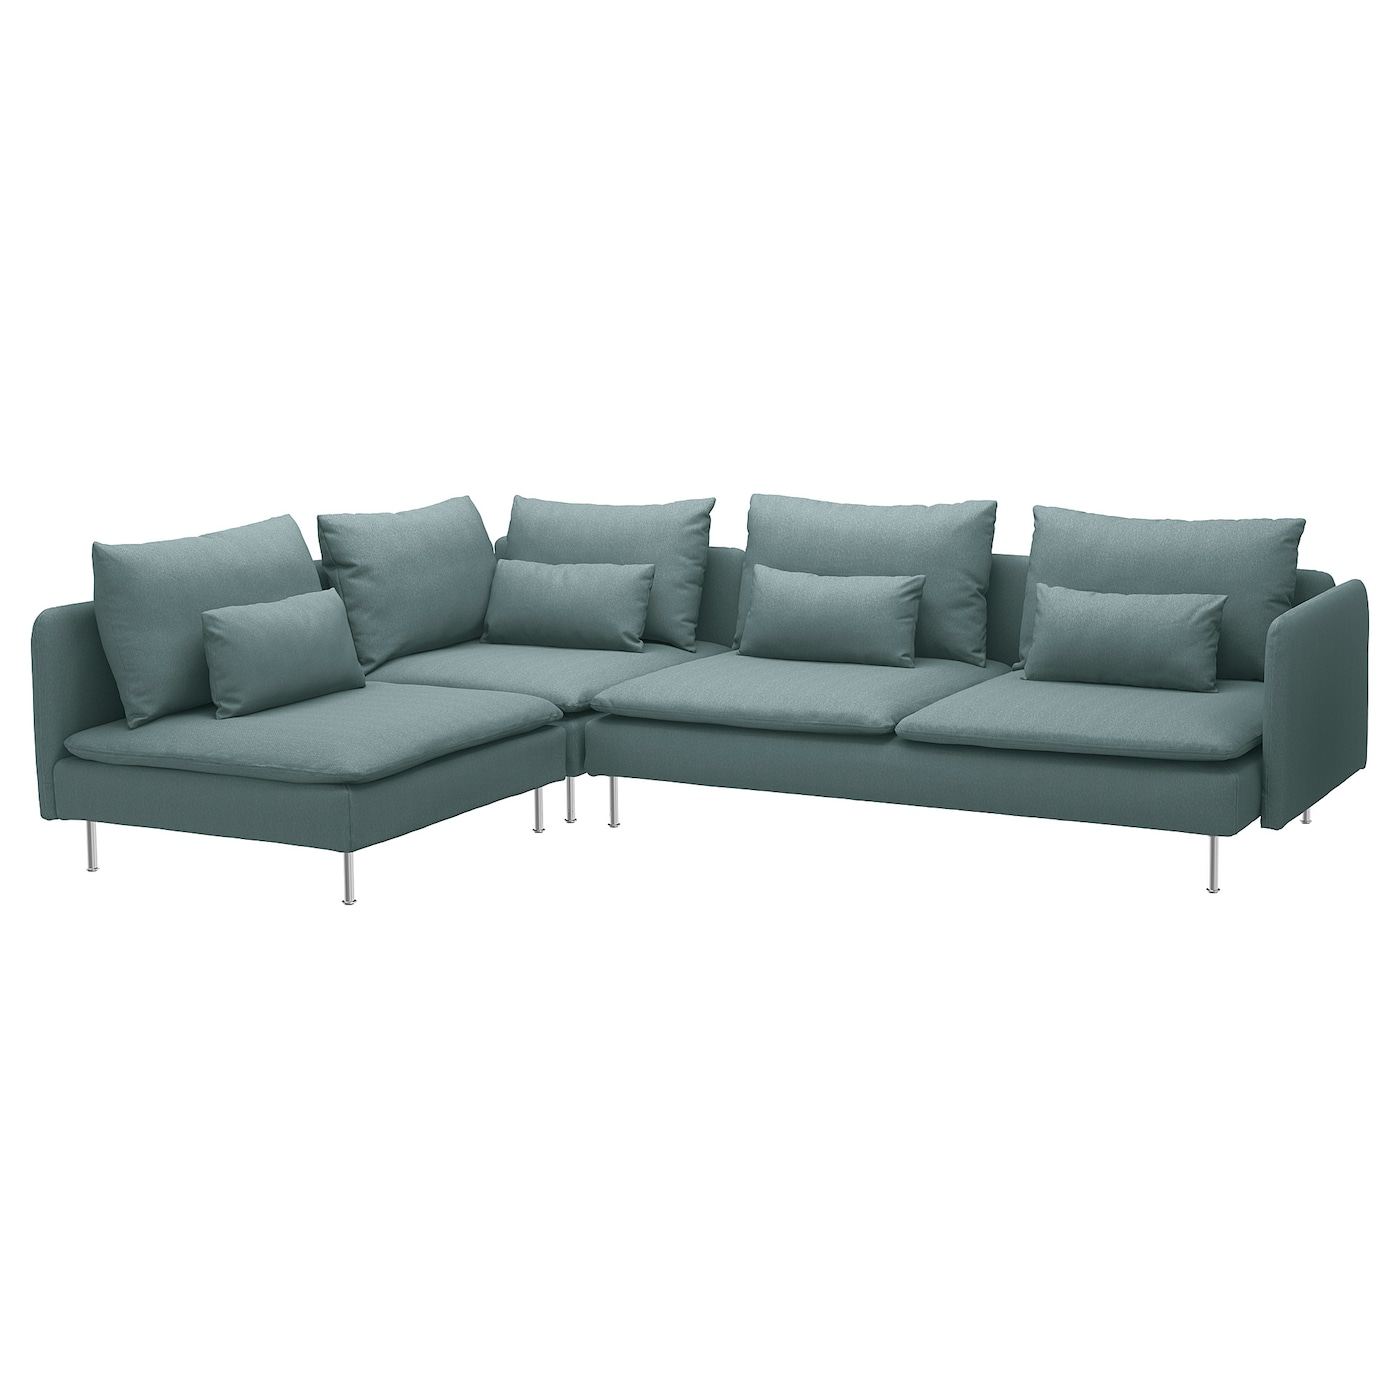 SÖderhamn Corner Sofa 4 Seat With